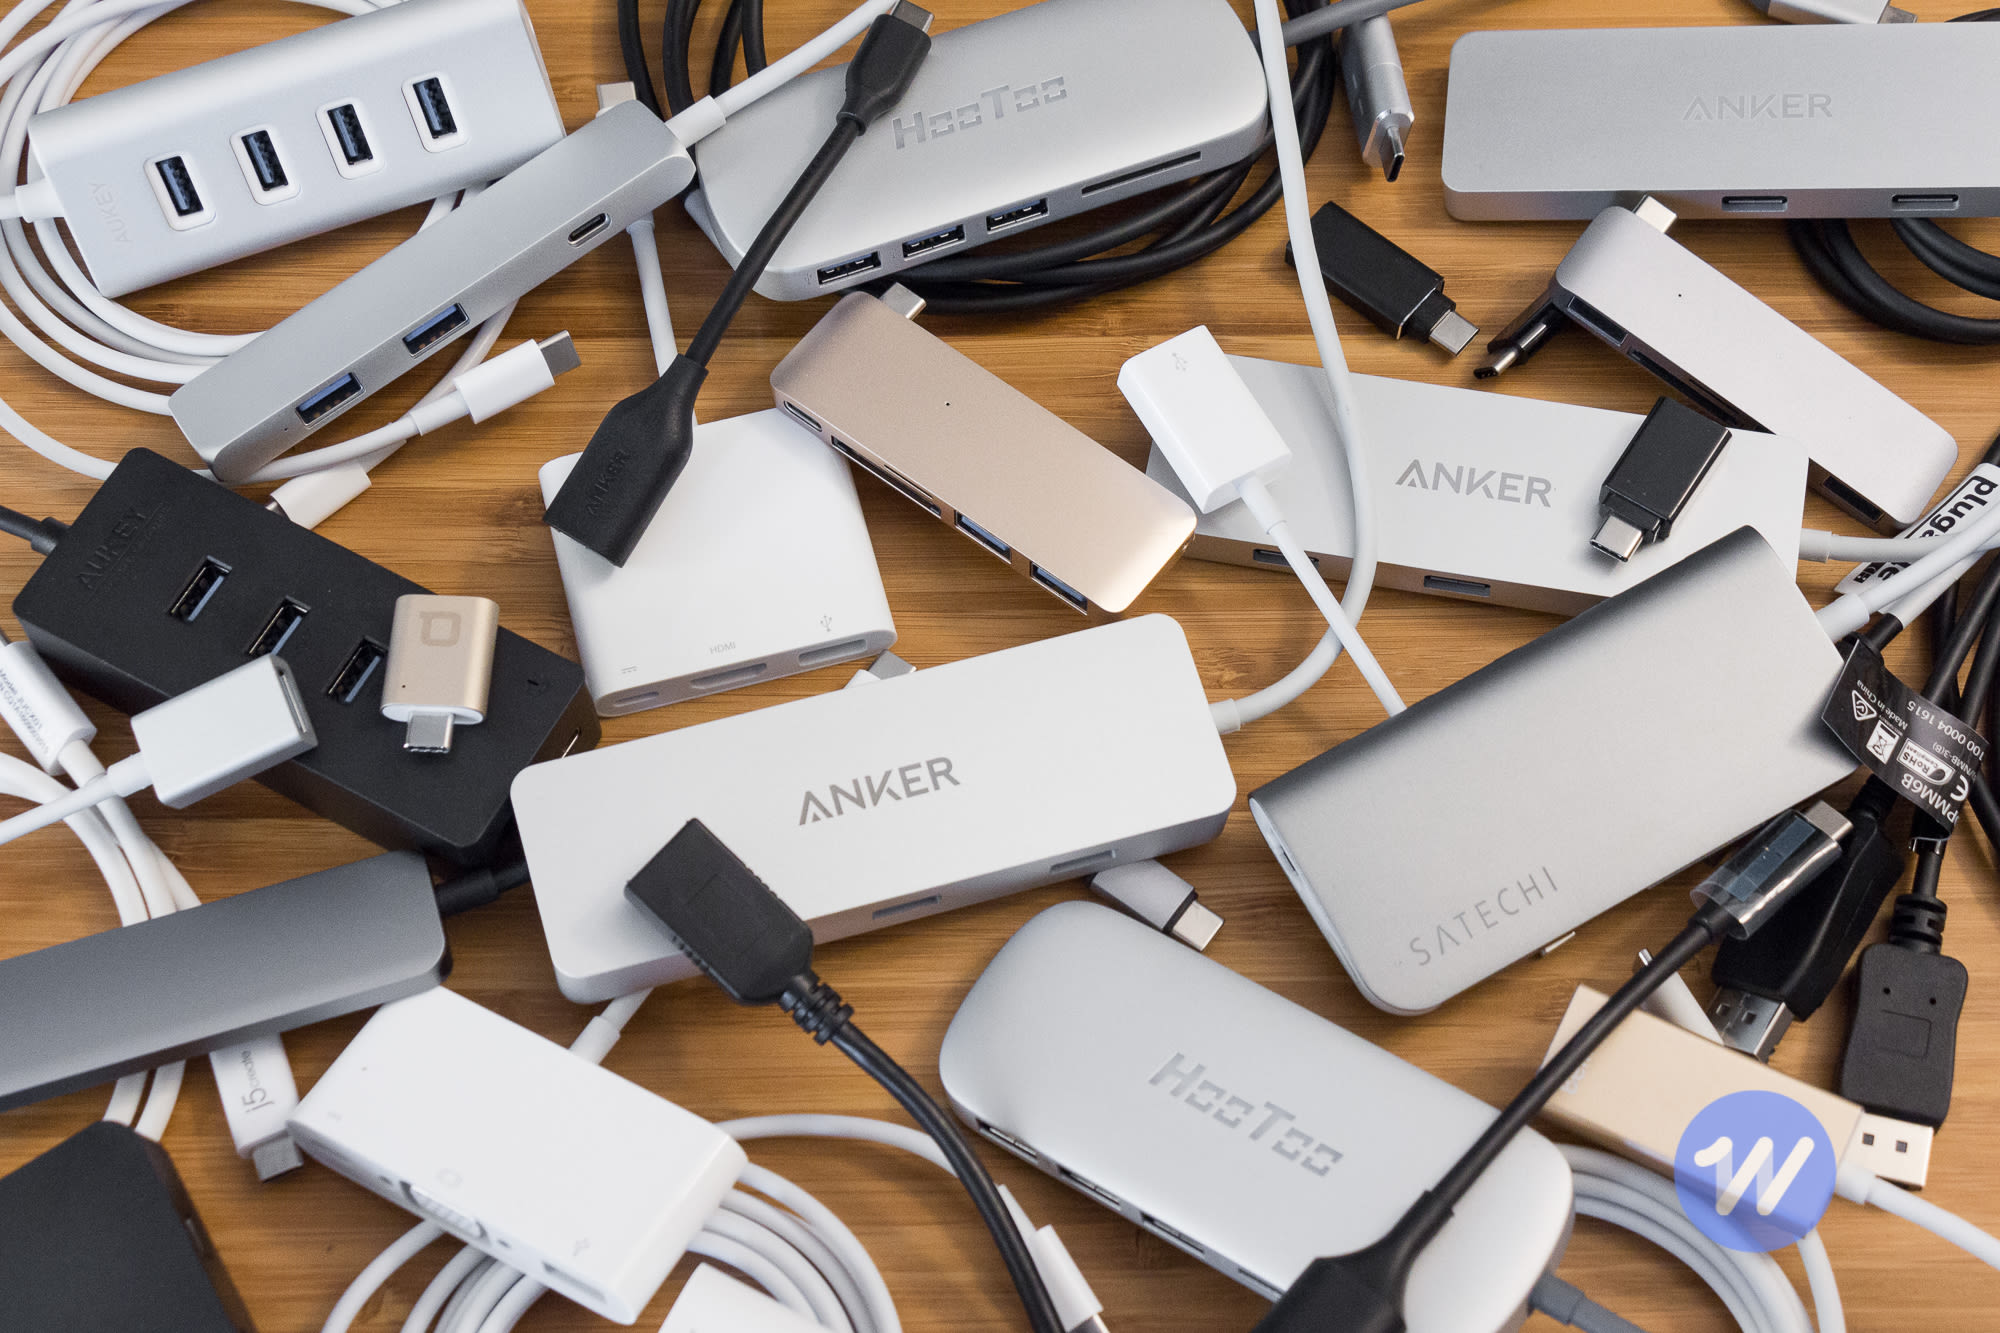 The Best Usb C Adapters Cables And Hubs Digital Signals You Pt 1